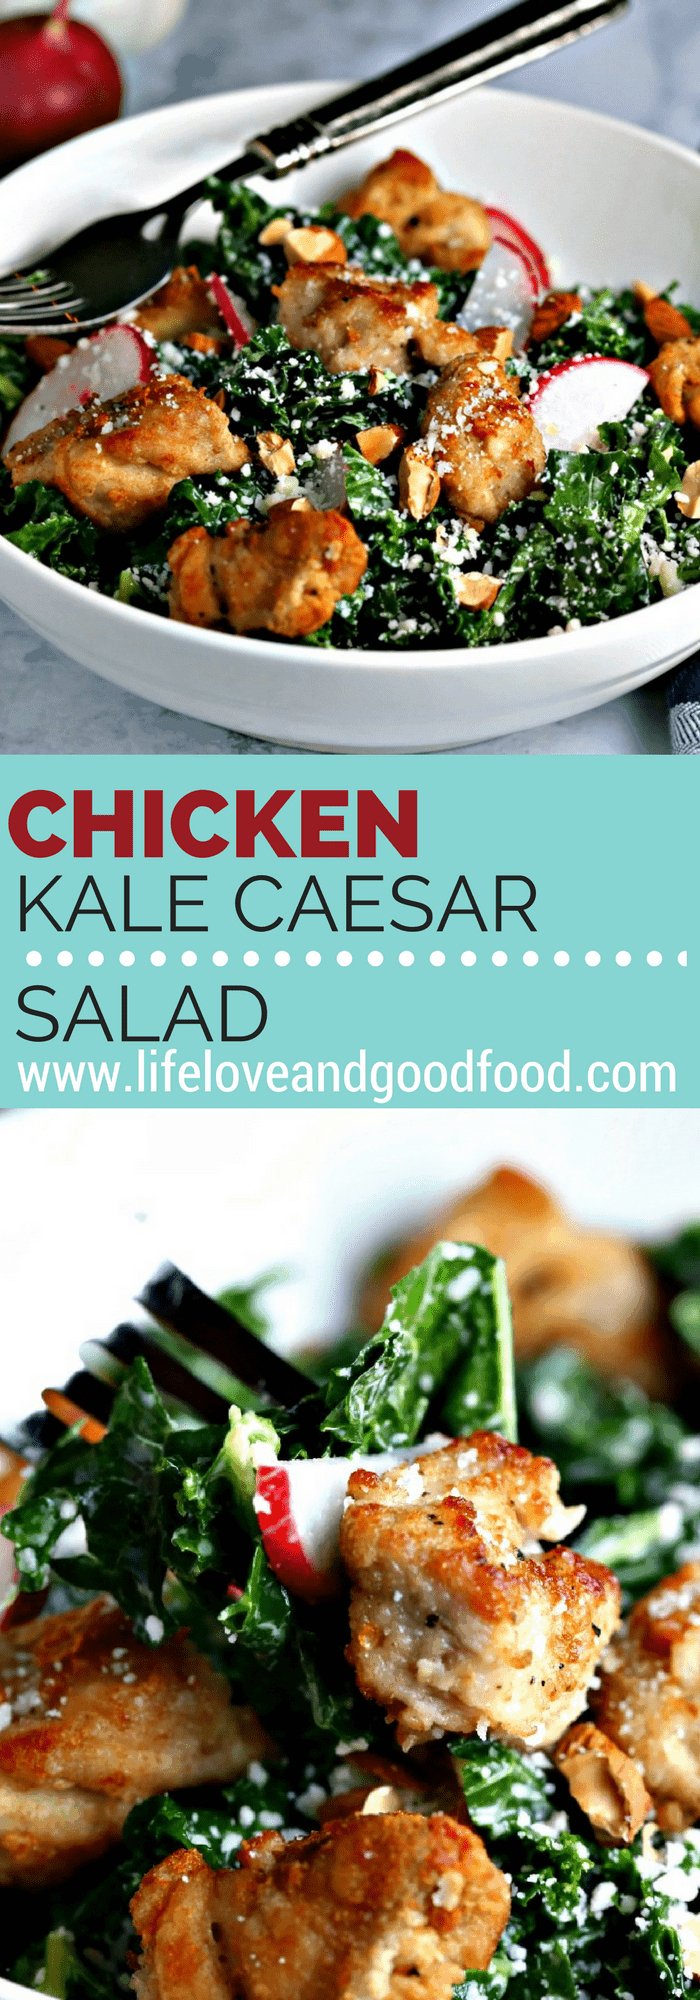 Chicken Caesar Salad is reinvented by substituting kale—one of the top-rated super foods—instead of the traditional romaine lettuce.